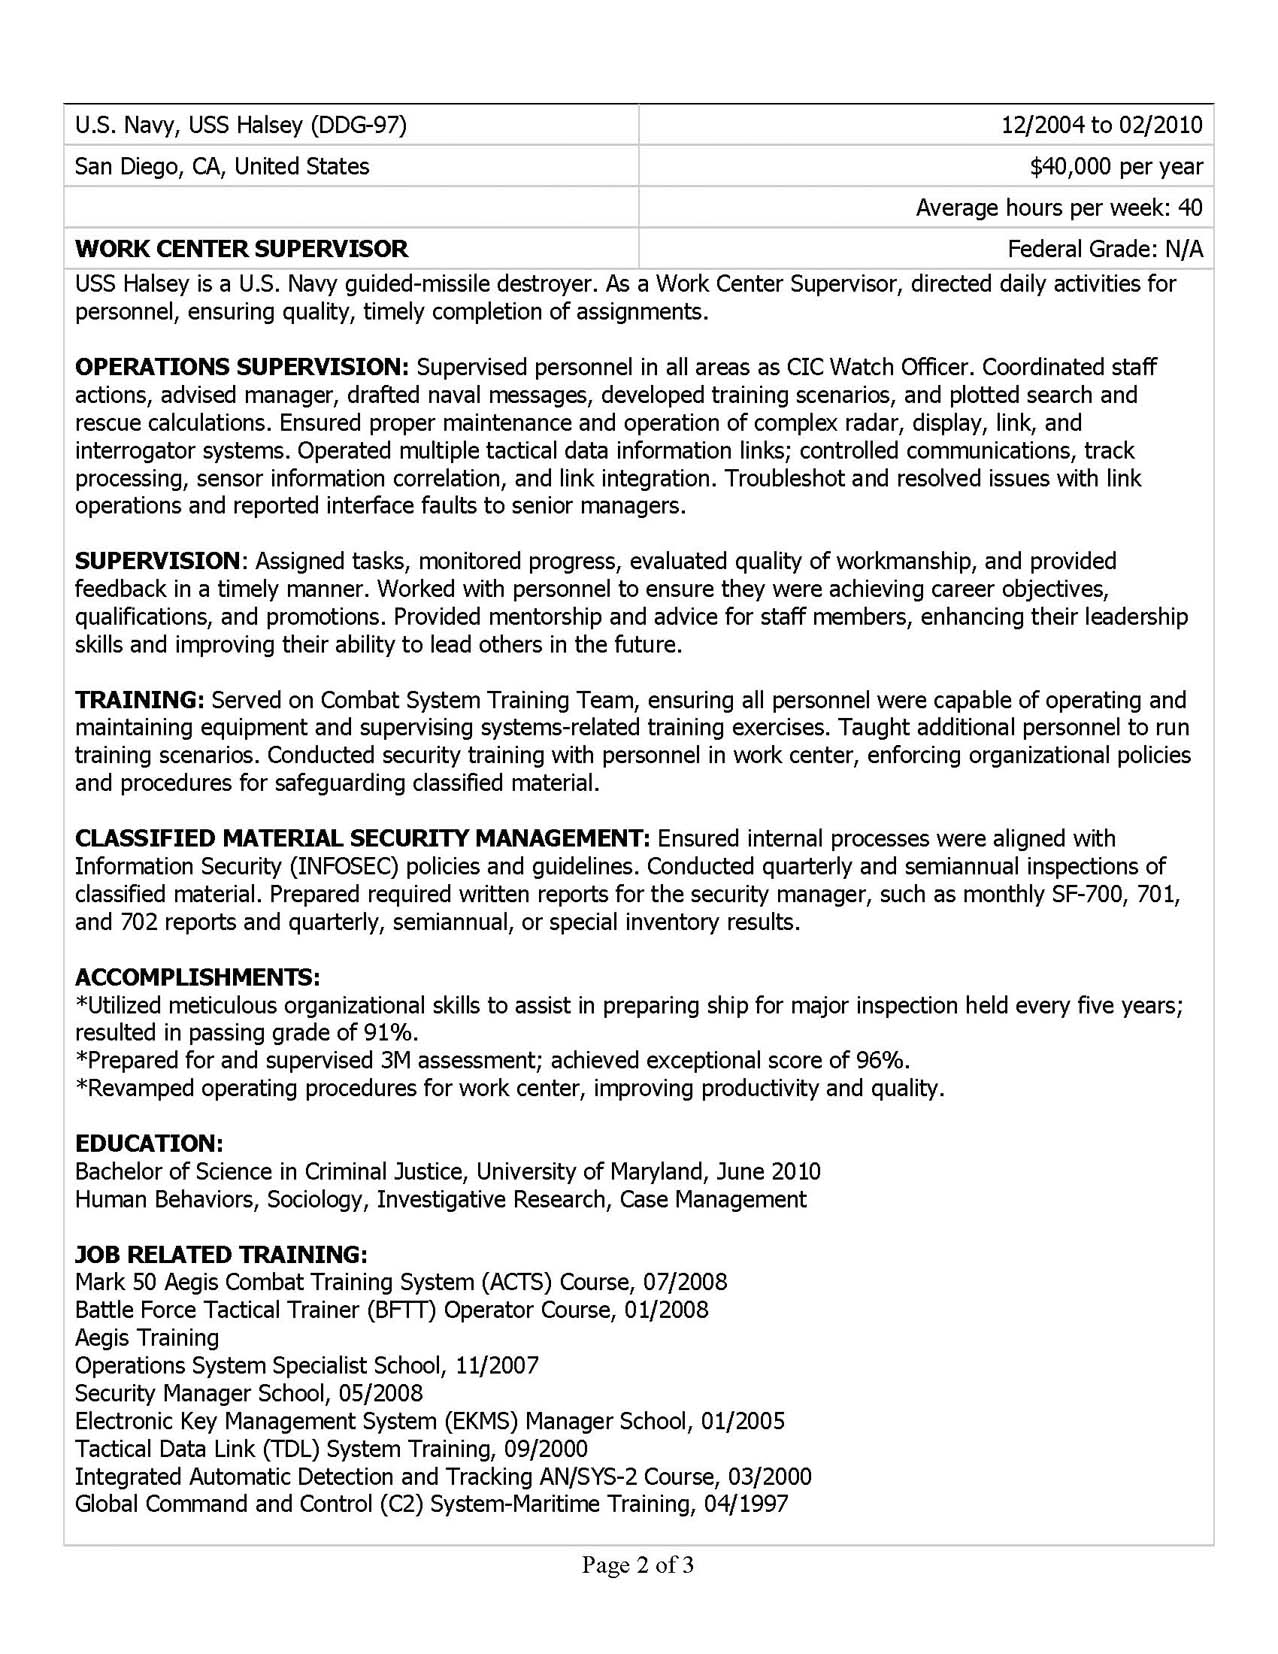 veteran resume writing services best military to civilian service for usajobs sample Resume Resume Writing Service For Military To Civilian